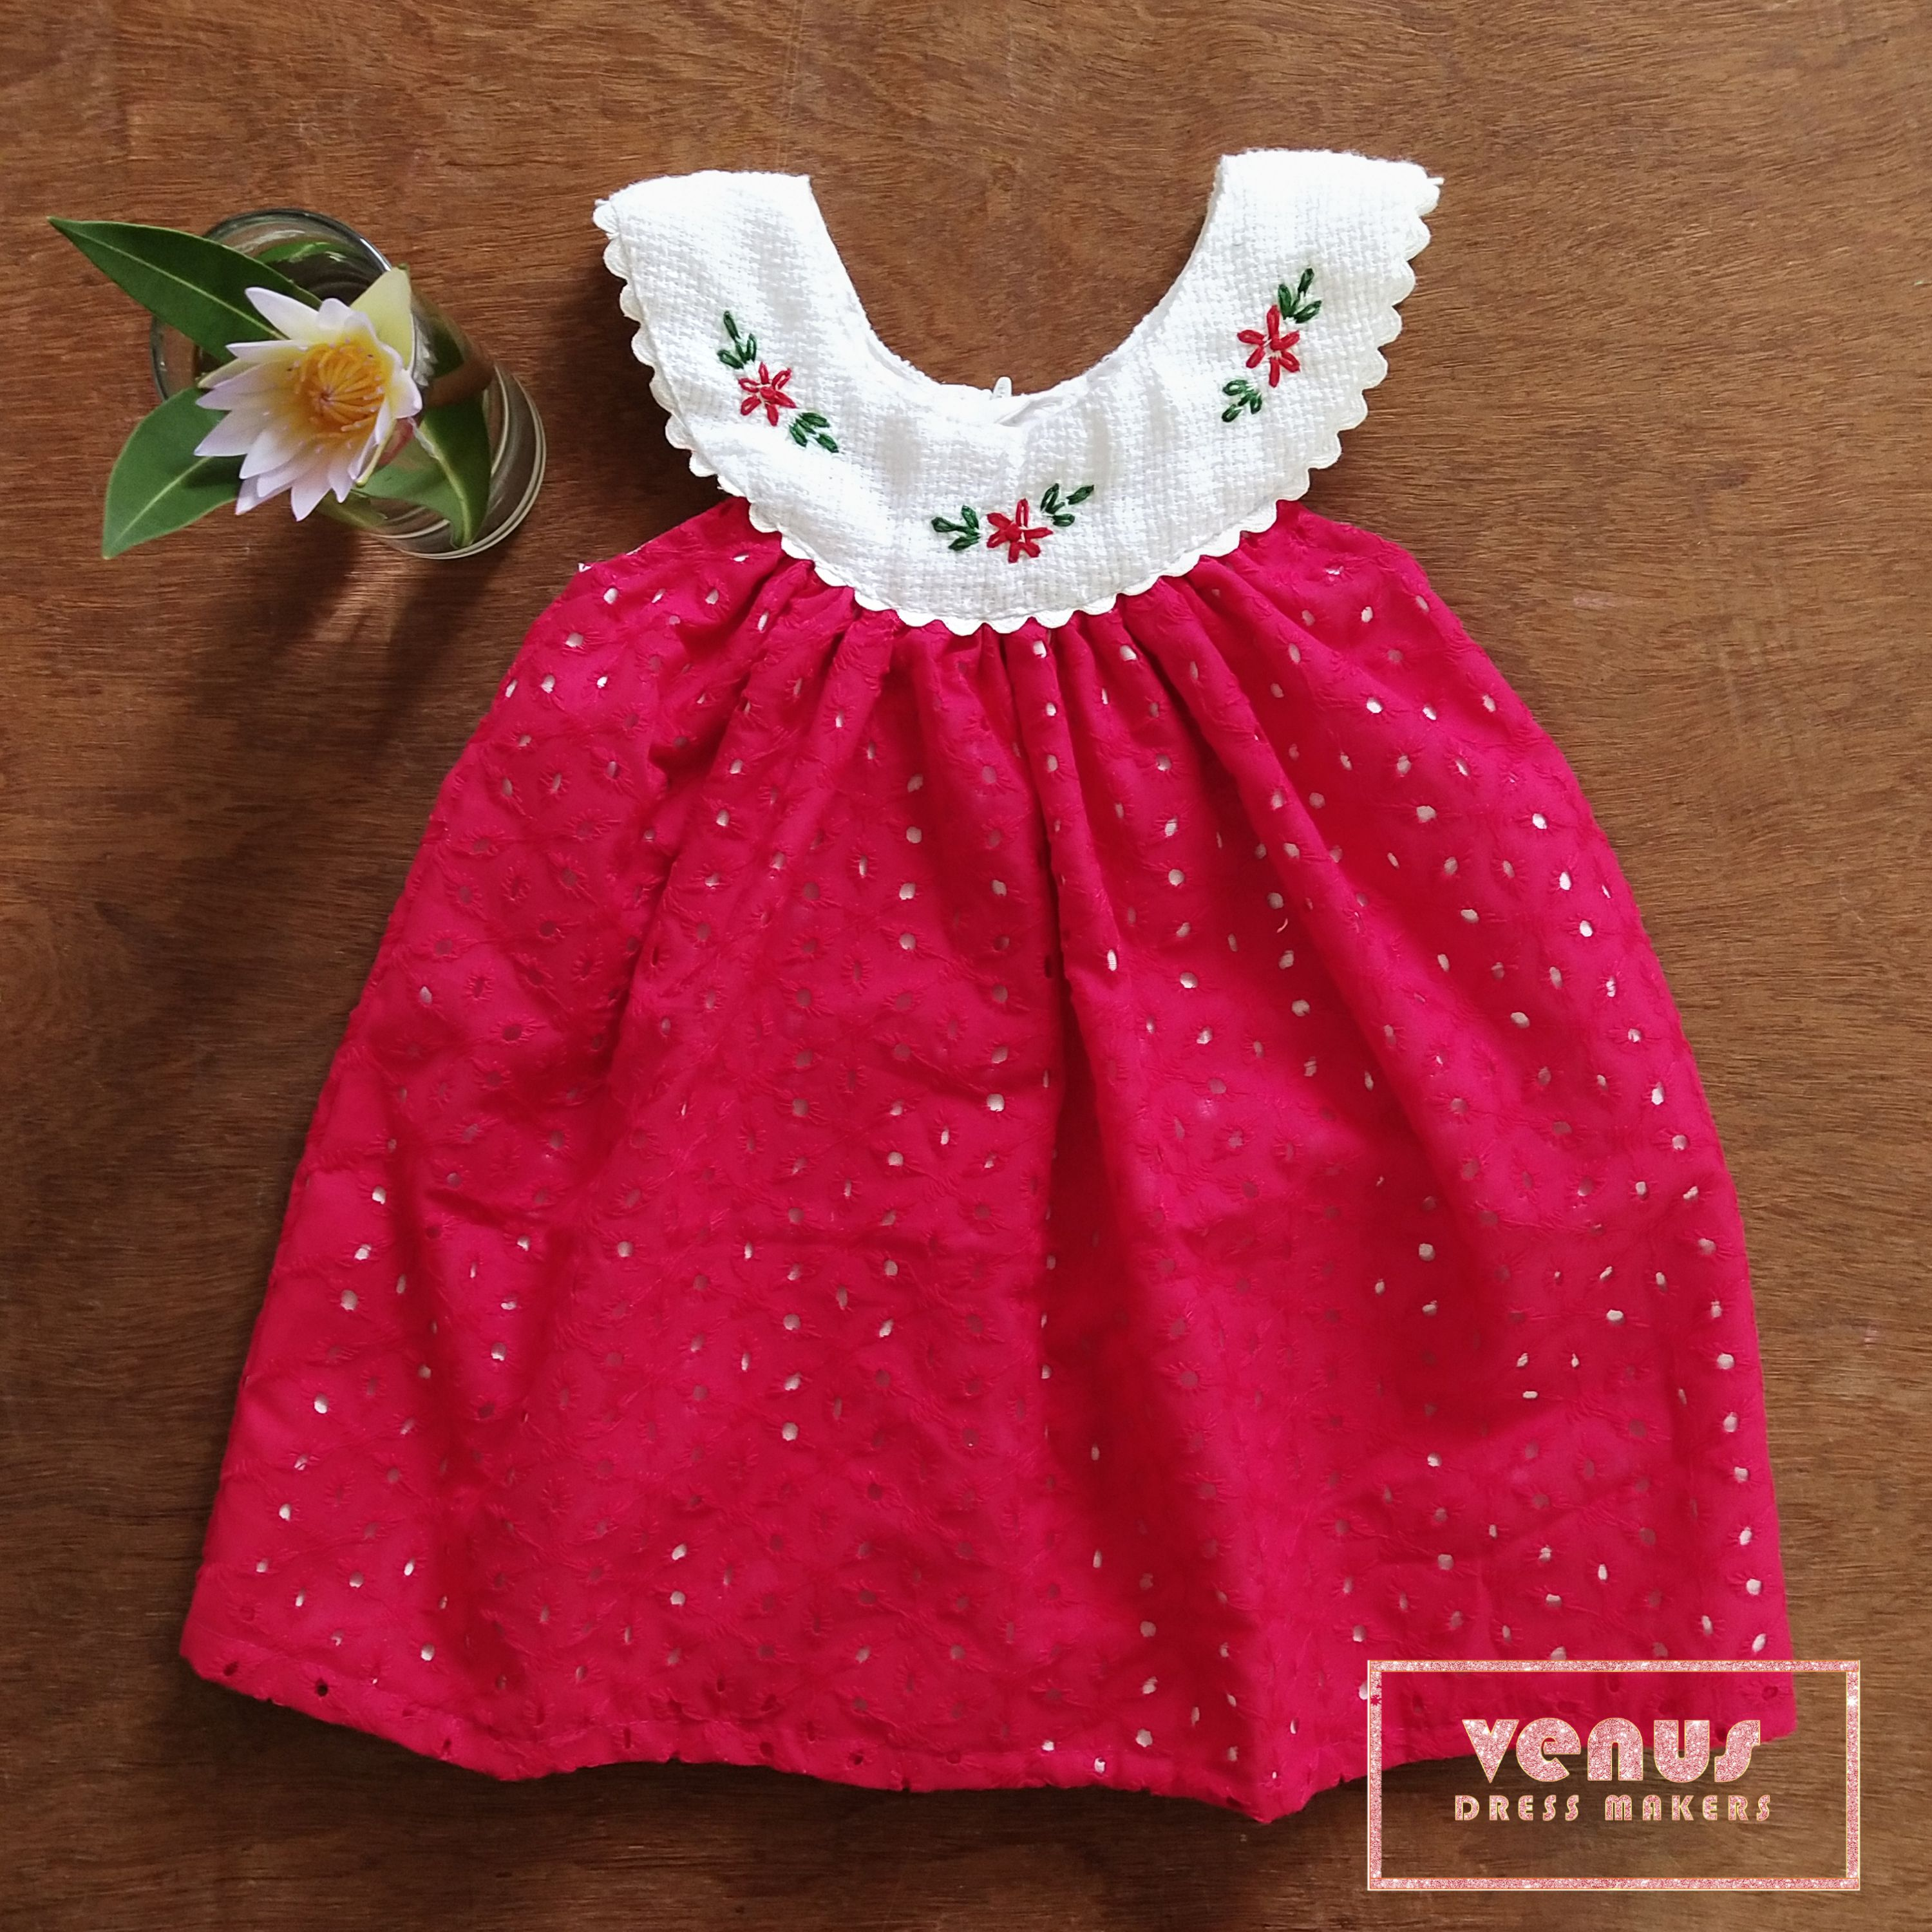 Venus Dress Makers Baby Girls Cotton Hakoba Dress  Girls frock